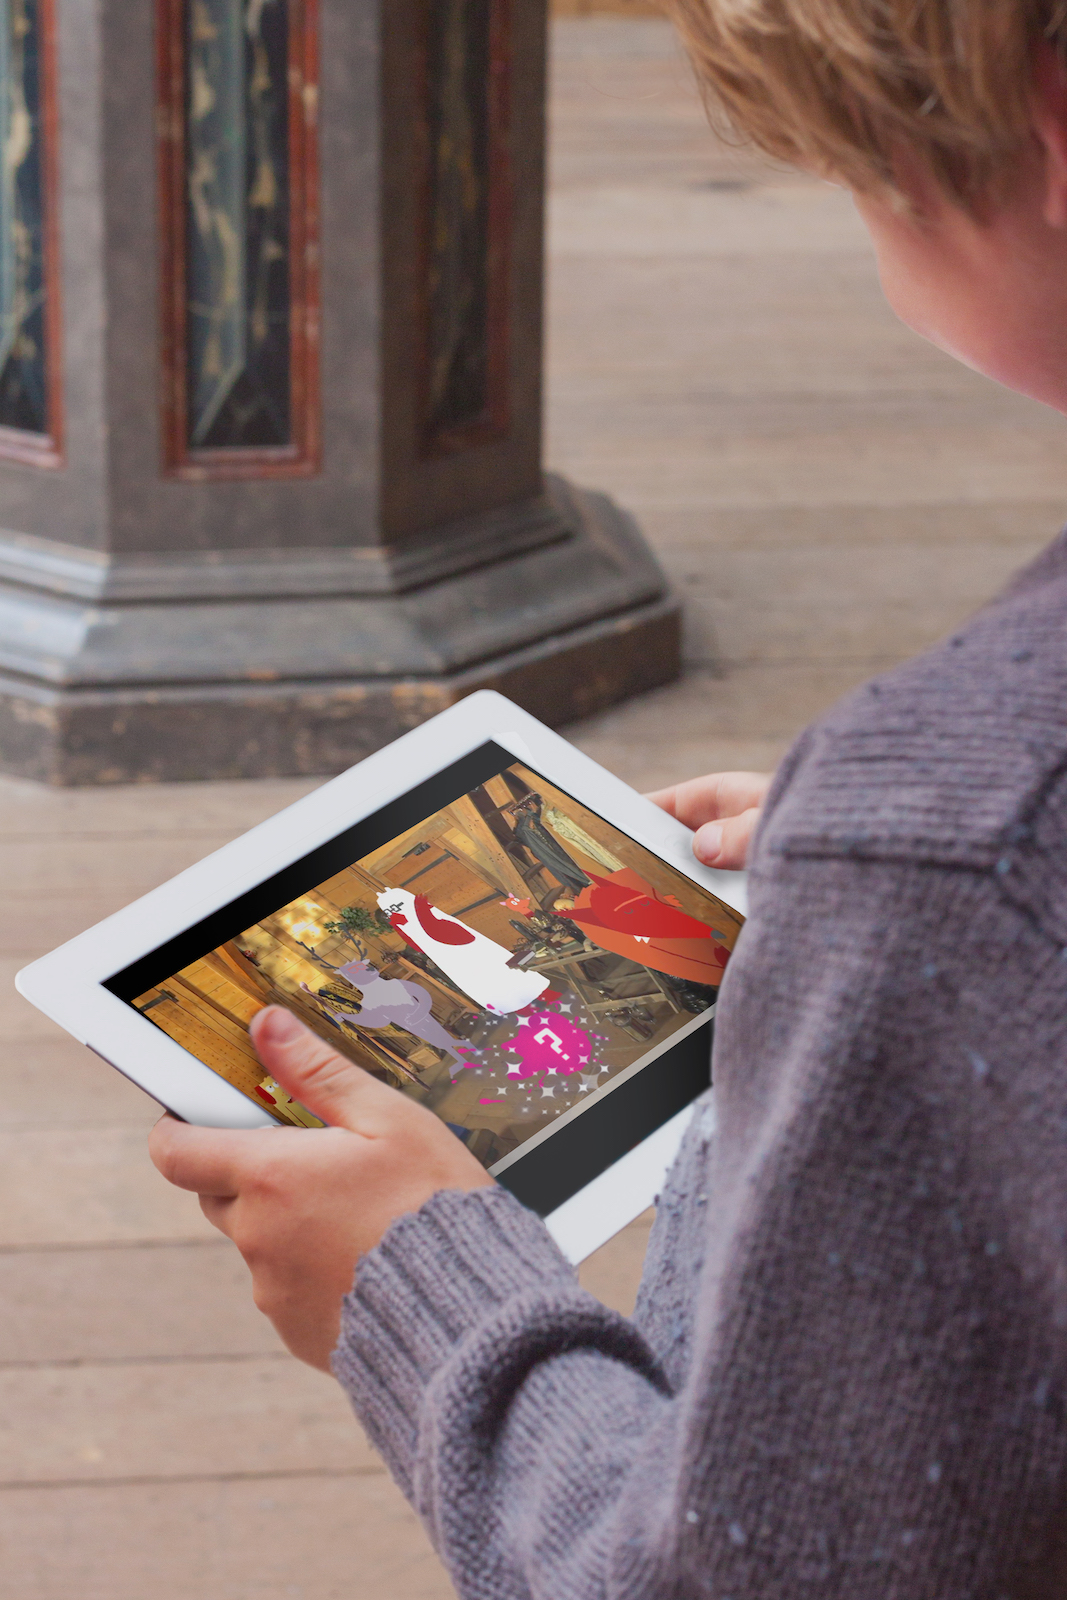 A child watches a video on an iPad